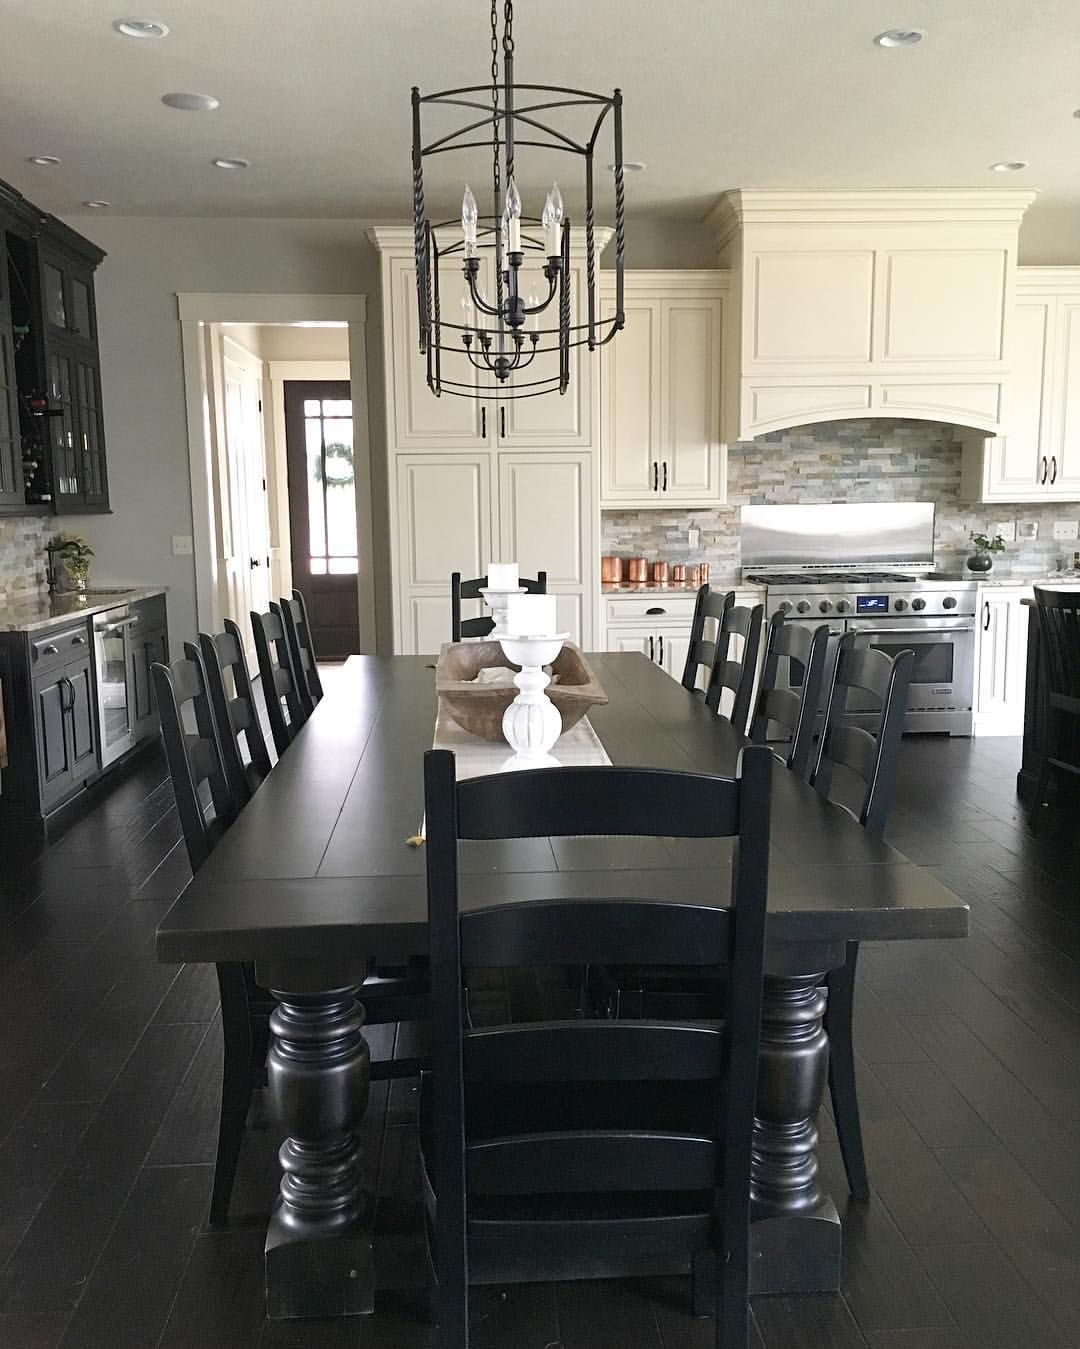 Black Dining Room Table And Chairs Black And White Modern Farmhouse Kitchen With Long Dining Table